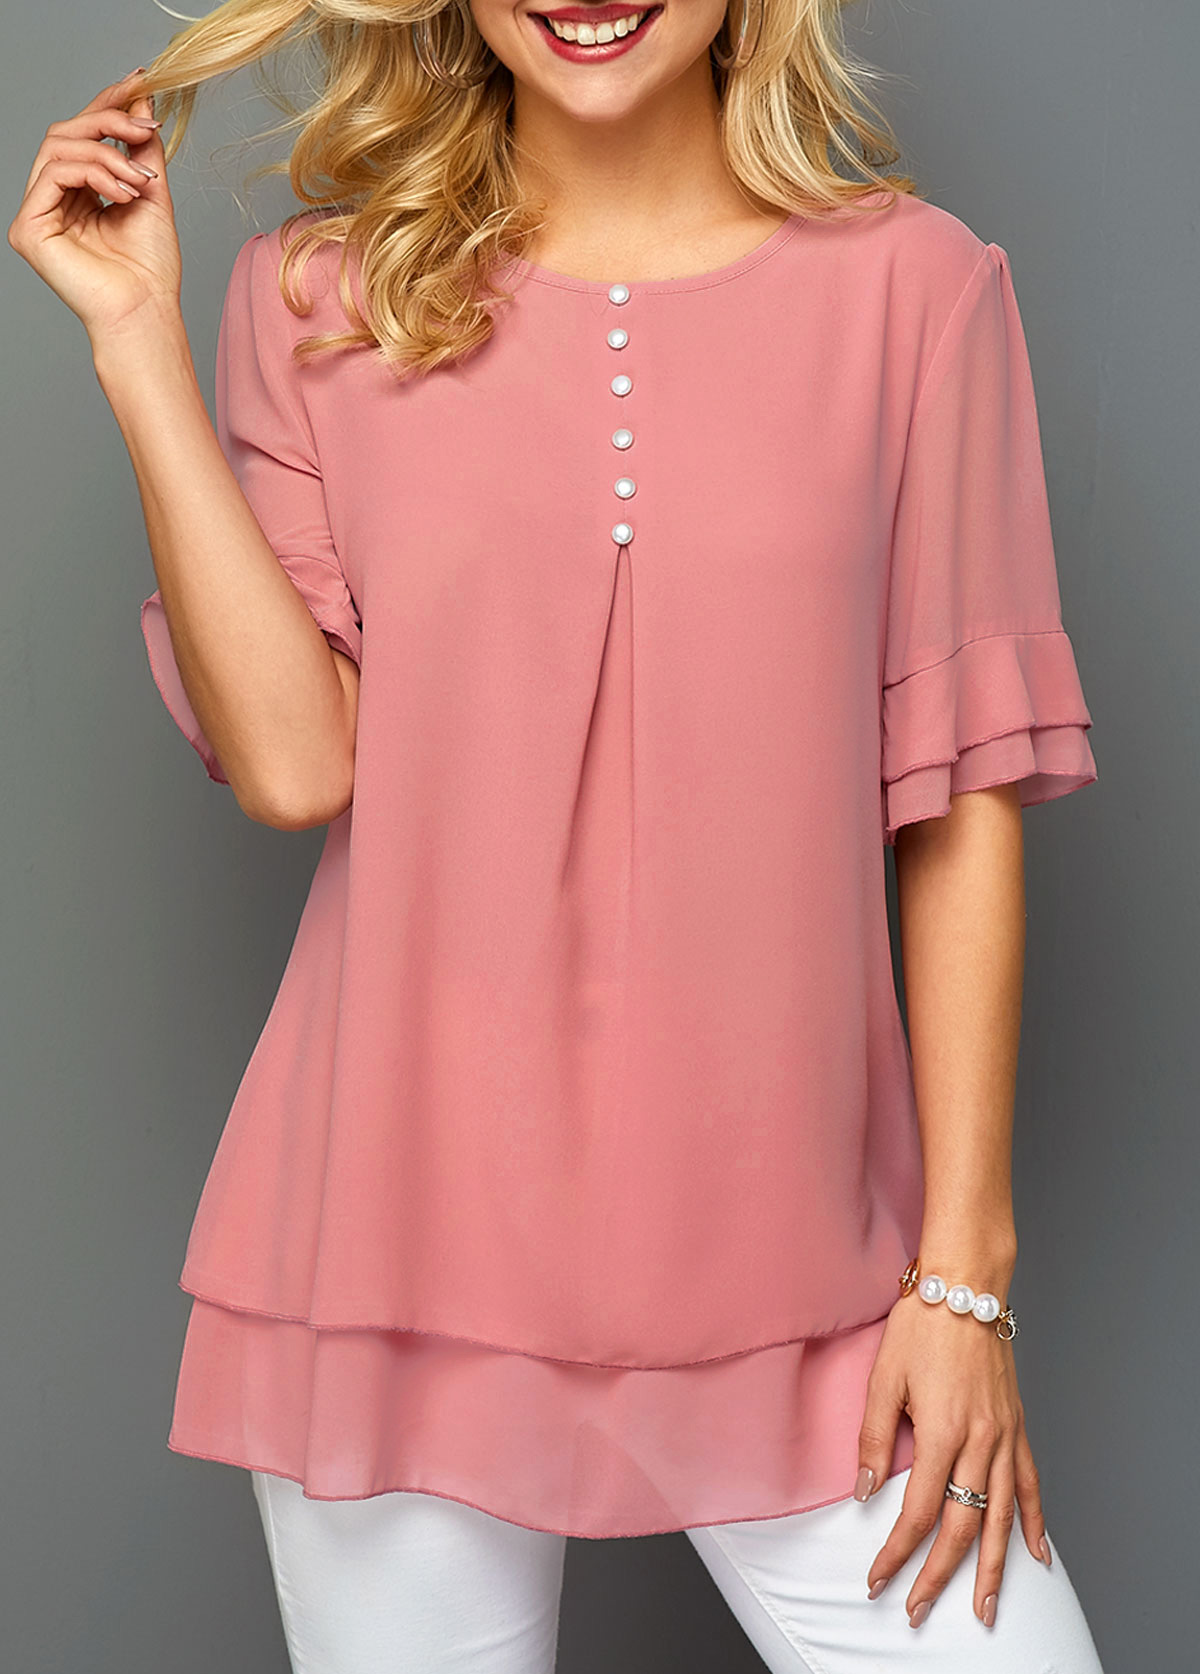 ROTITA Half Sleeve Layered Hem Round Neck Chiffon Blouse